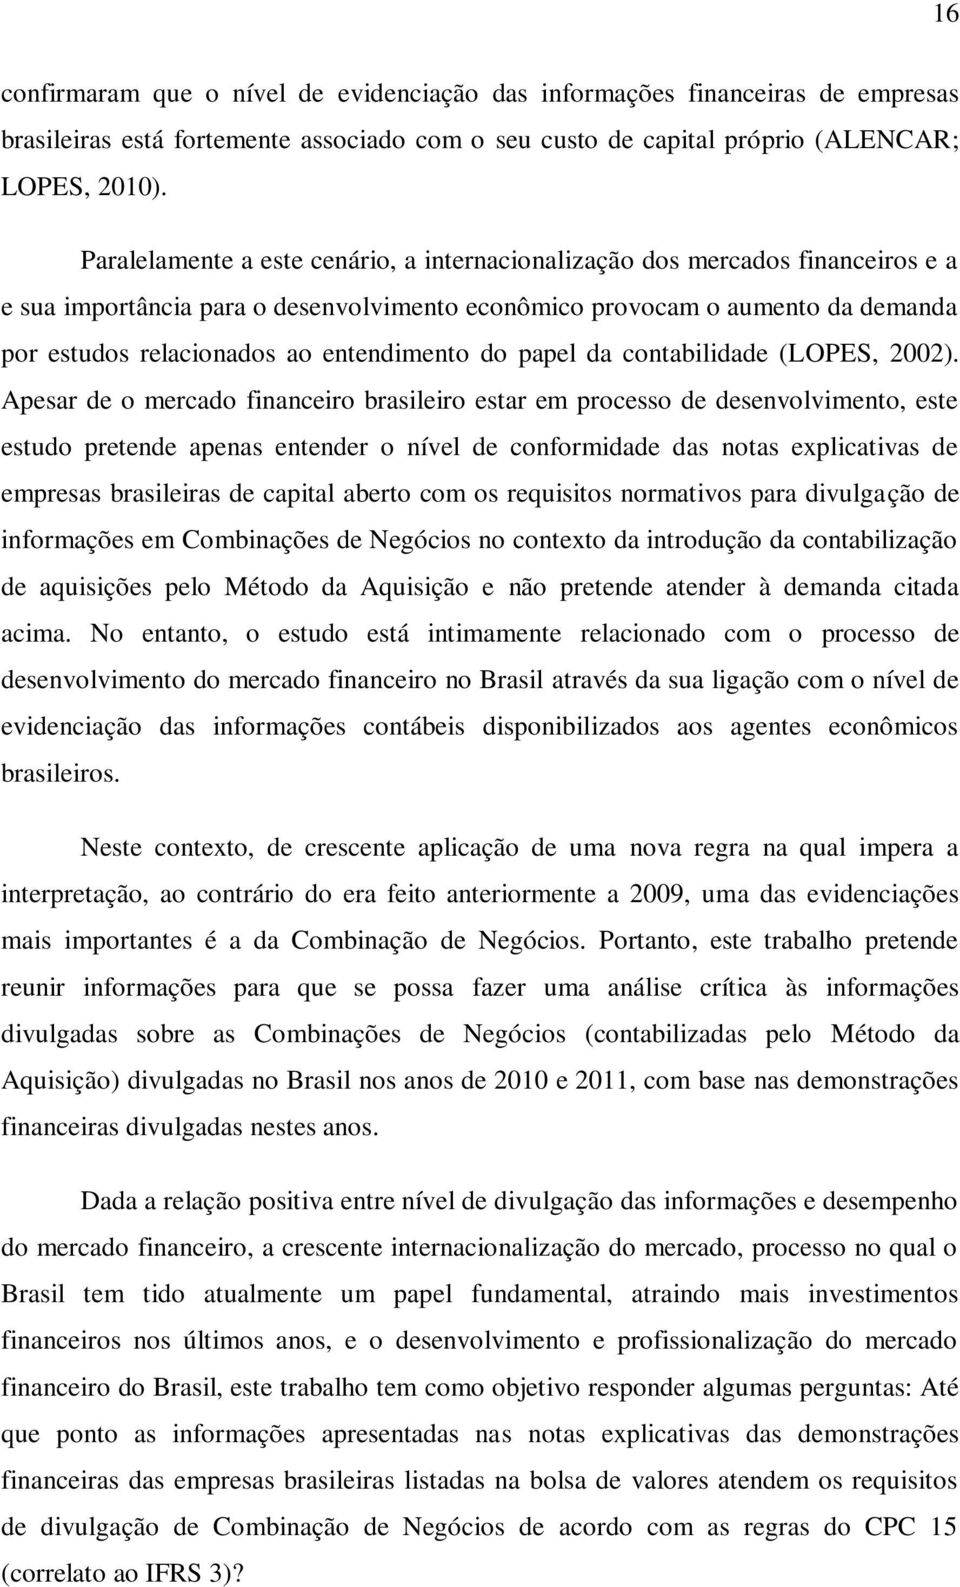 entendimento do papel da contabilidade (LOPES, 2002).